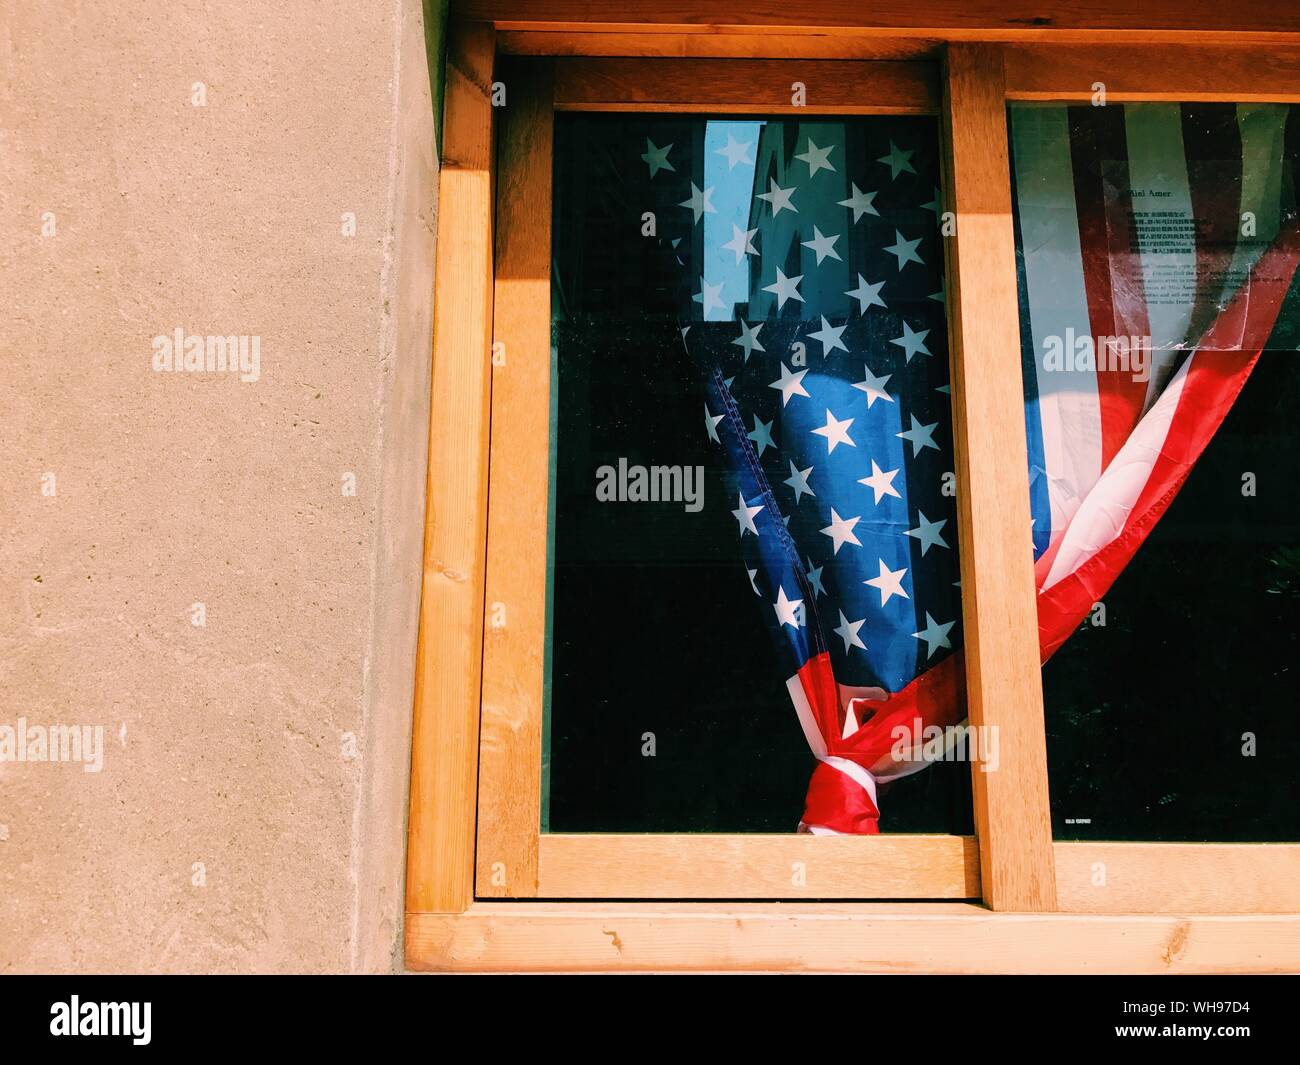 Low Angle View Of American Flag Curtain Seen From Window Glass Stock Photo